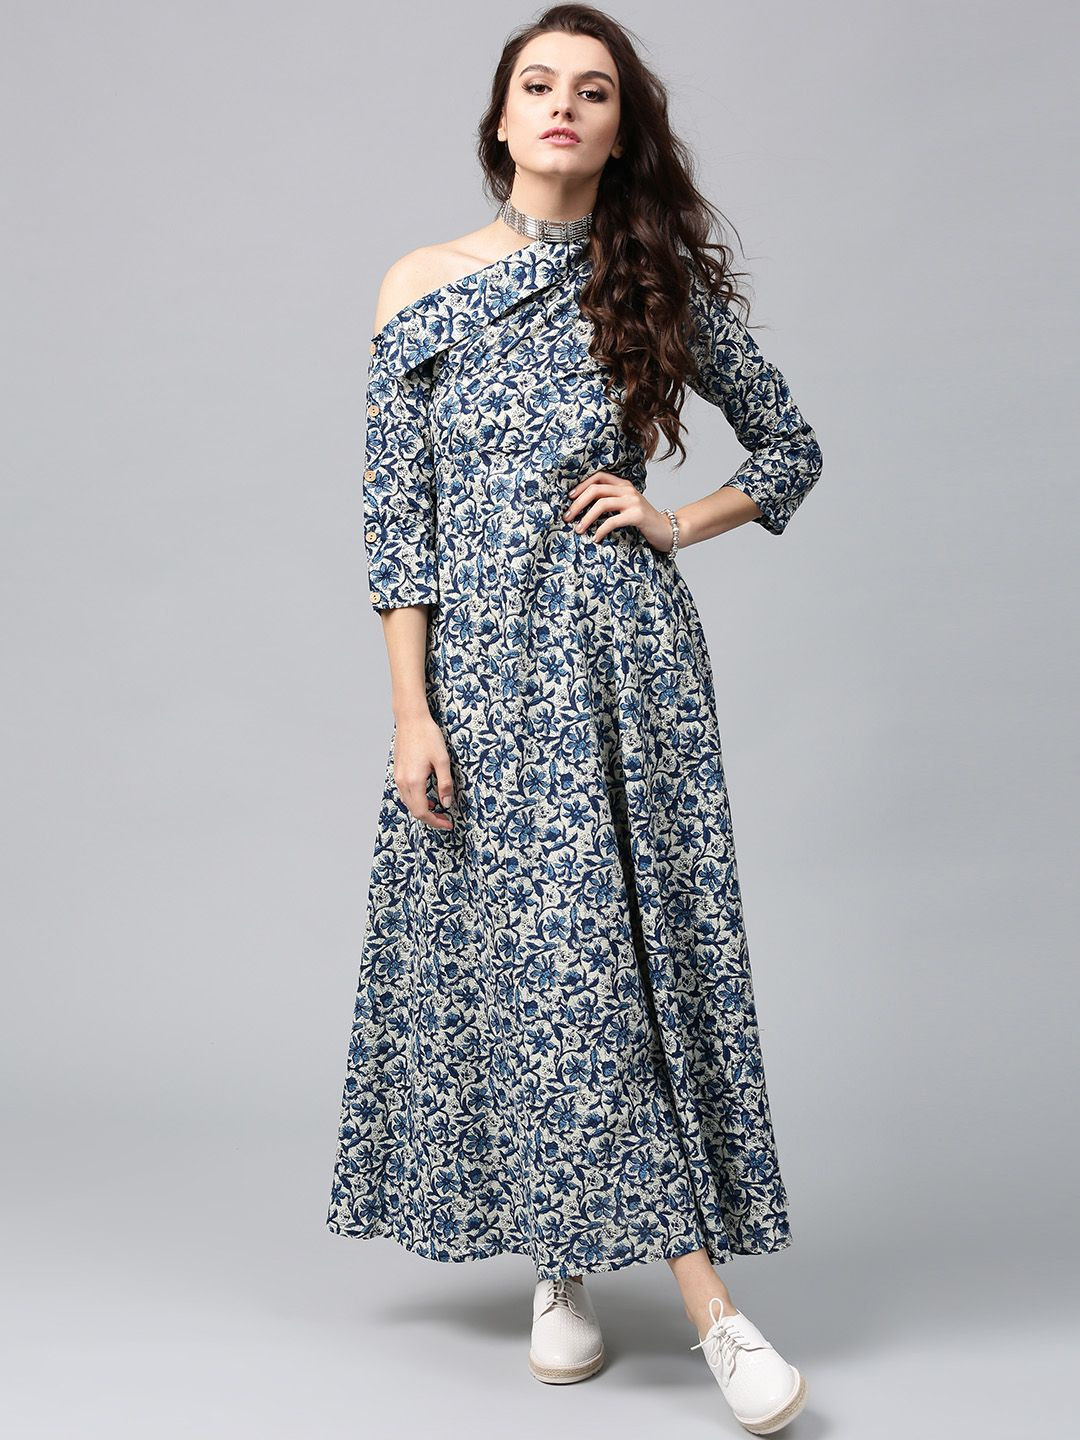 35481064c2d AKS Blue Printed One-Shoulder Flared Kurta  Blue  Printed  One-Shoulder   Flared  Kurta